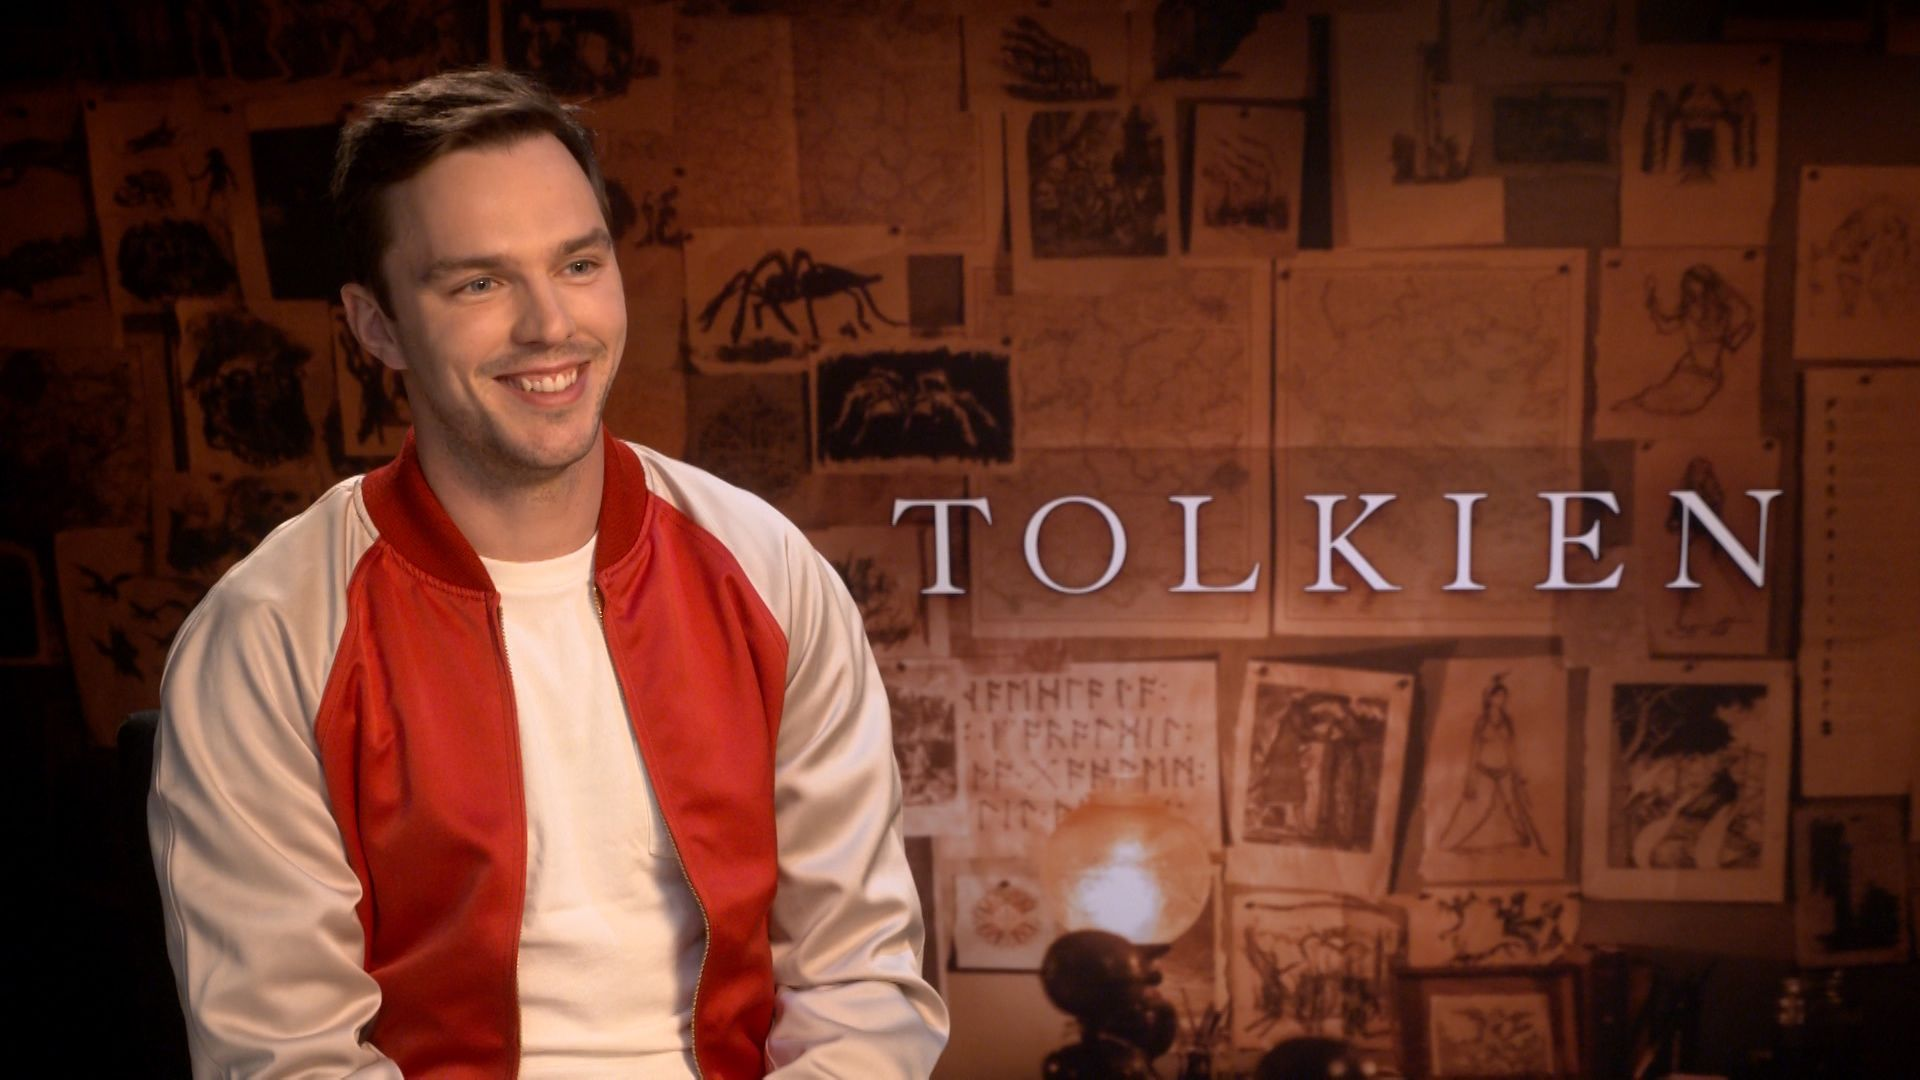 Movie Poster 2019: Nicholas Hoult On Tolkien And Playing The Author Across